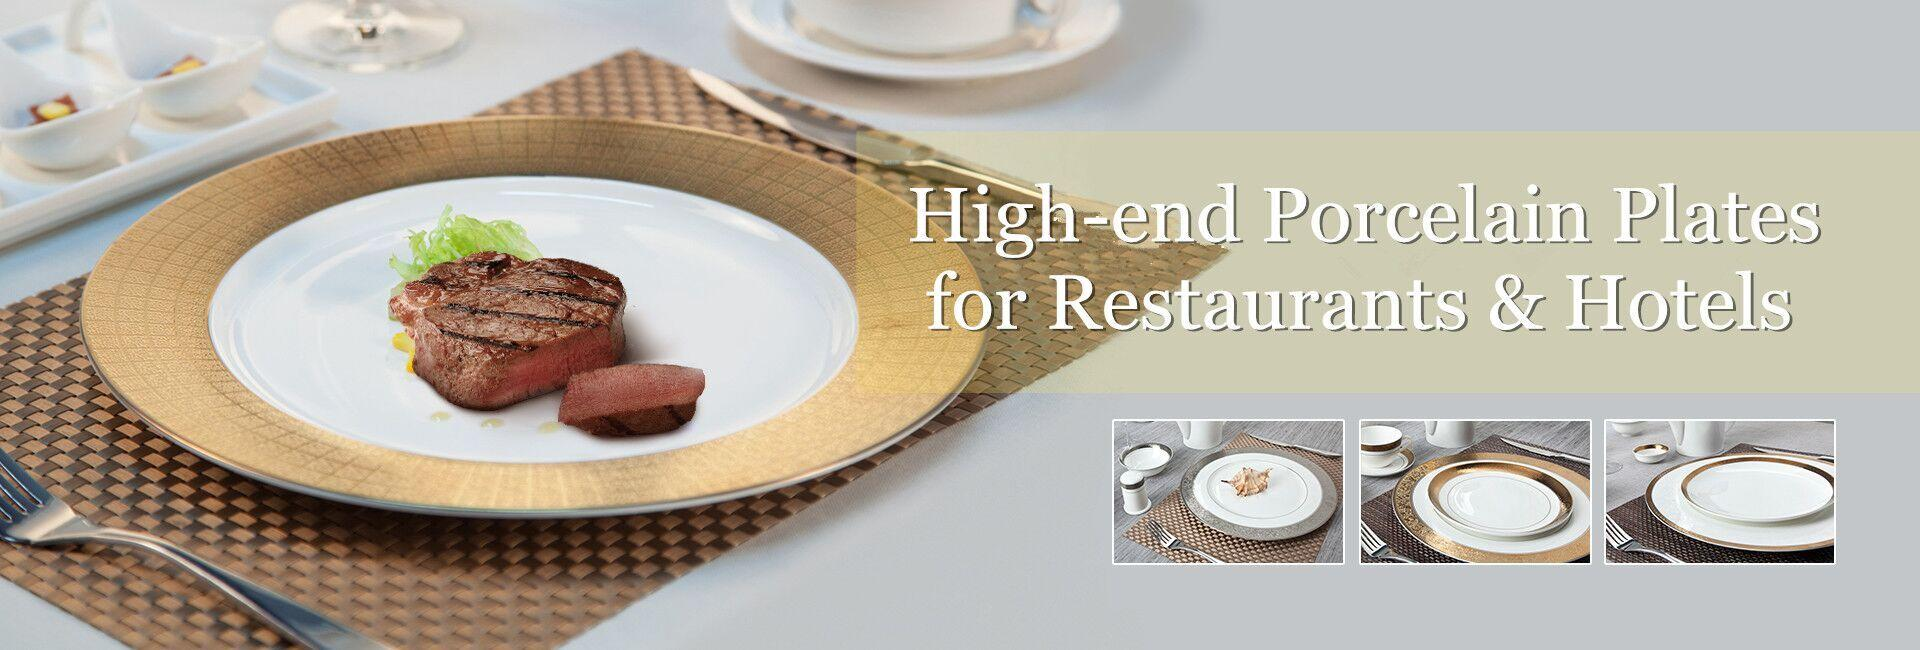 Wholesale Ceramic Plates, Hospitality Plates Manufacturer, Restaurant Plates Suppliers